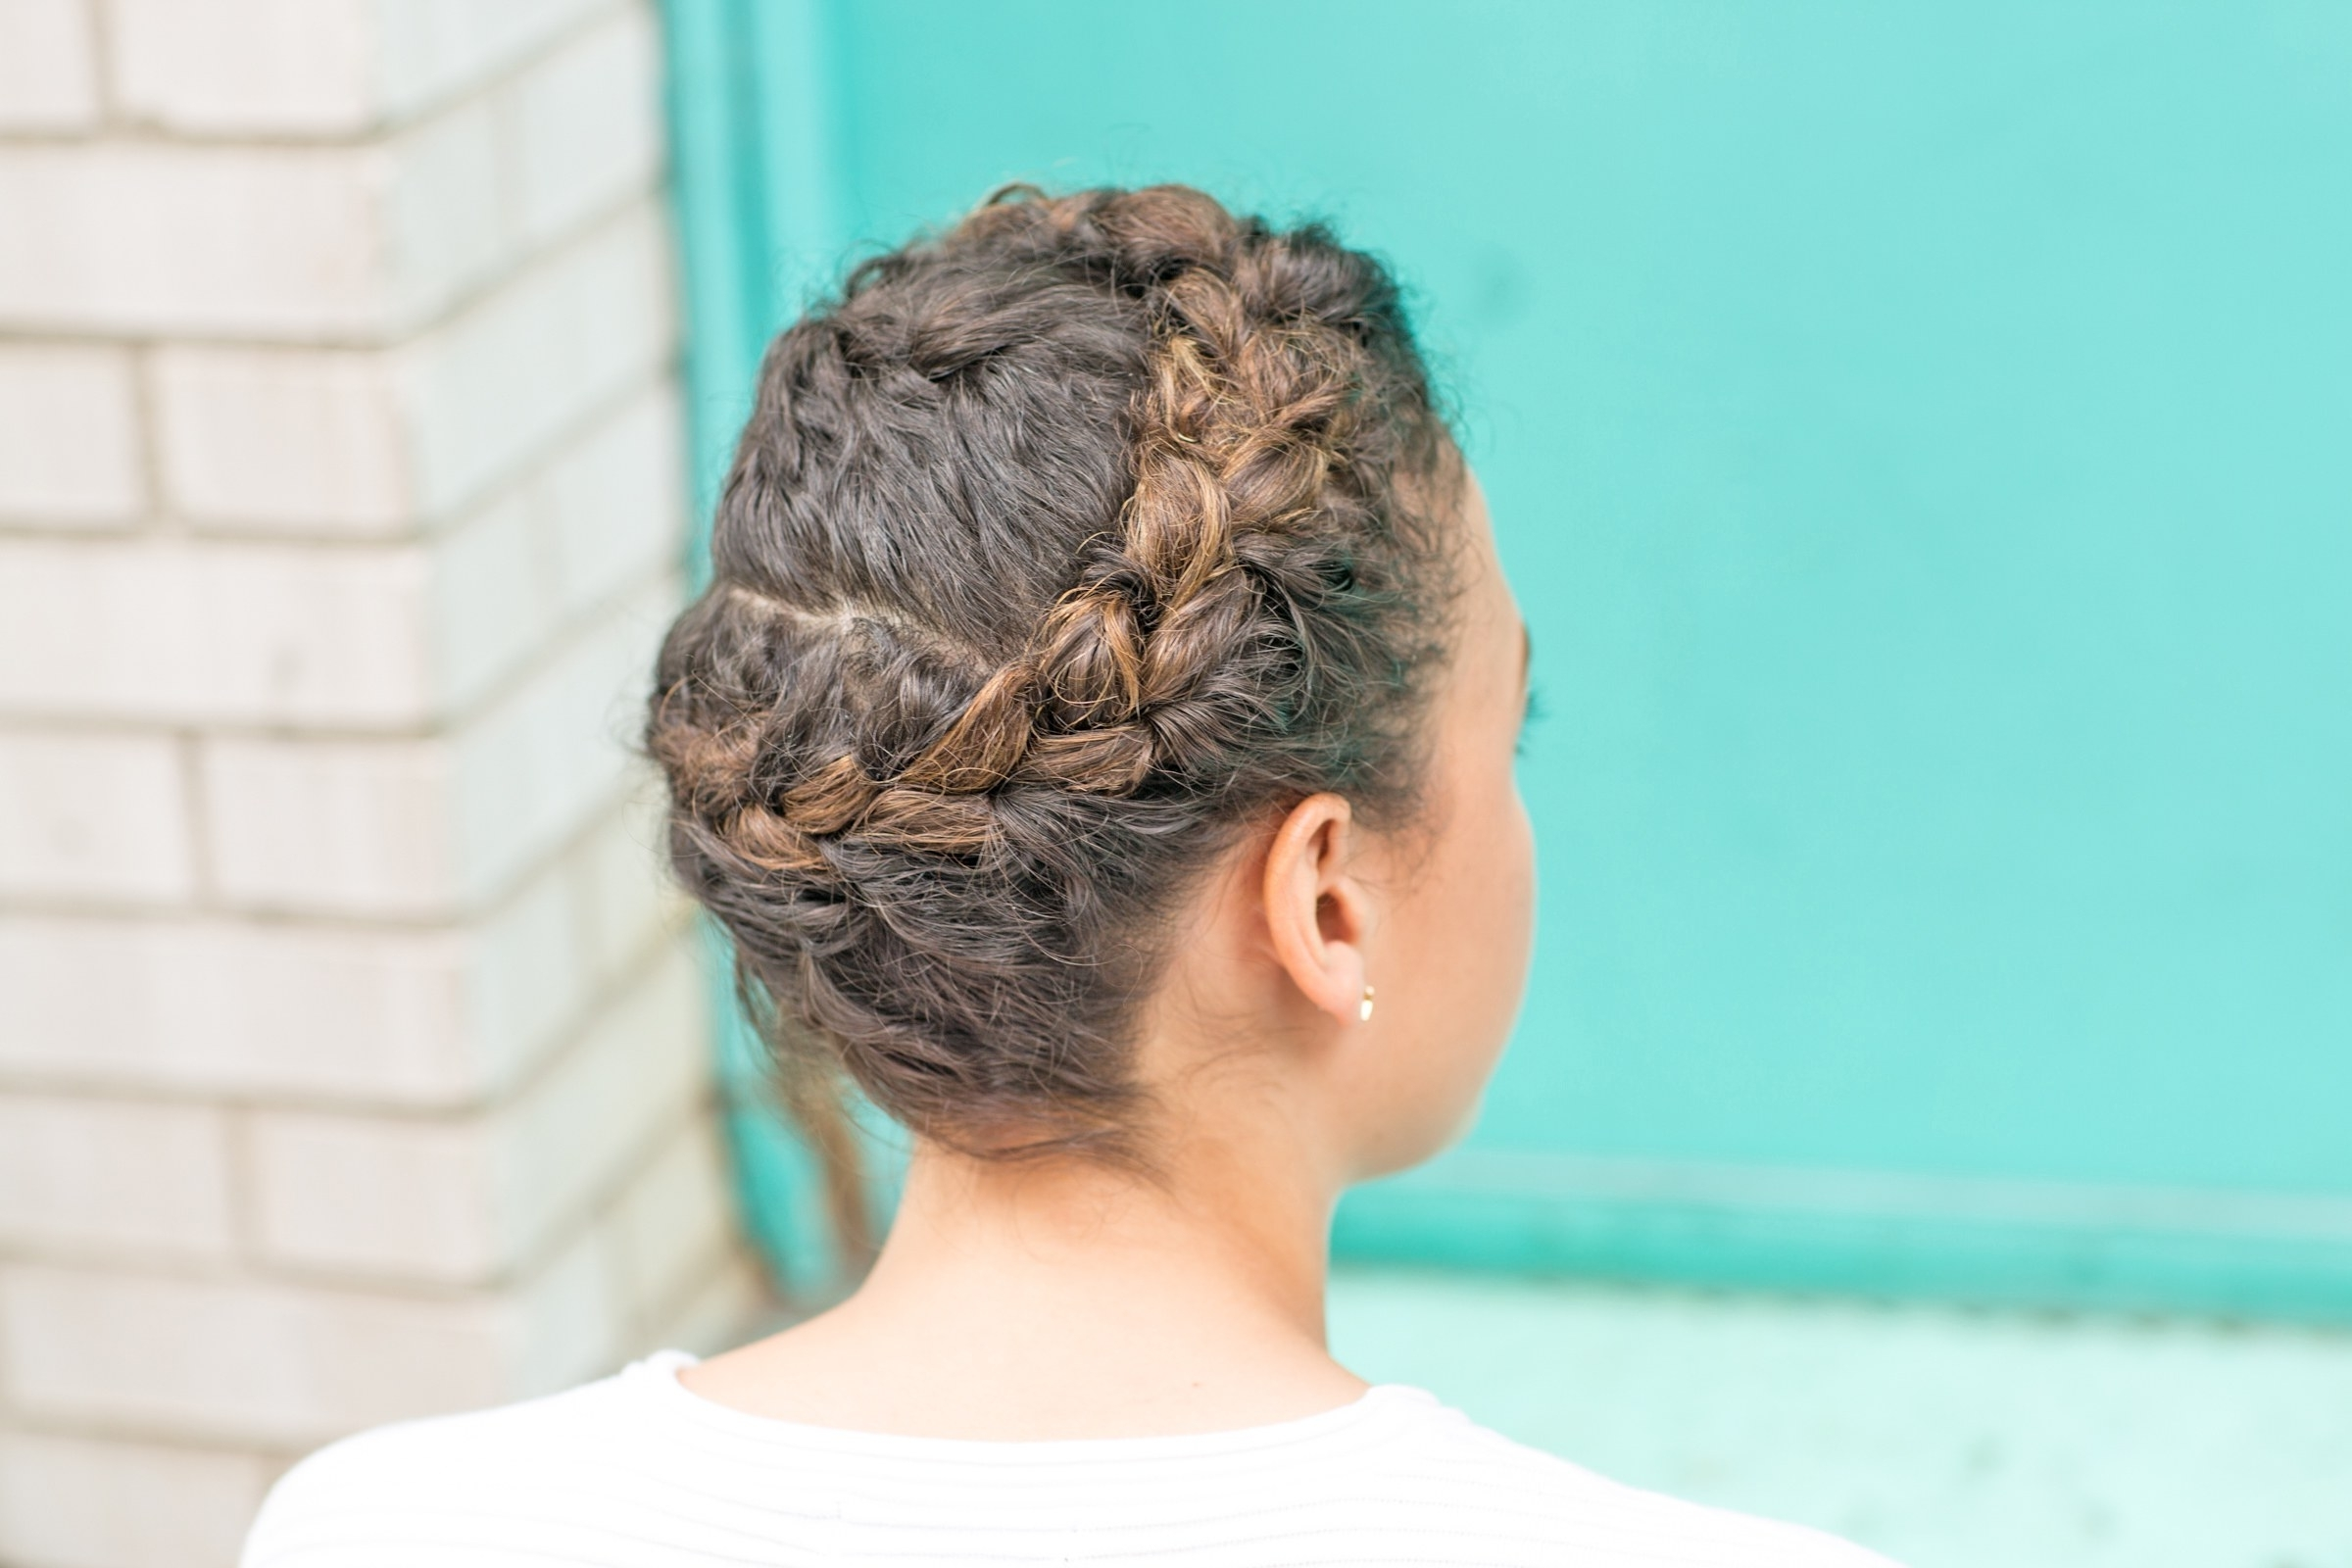 Current Braided Hairstyles For Curly Hair Pertaining To The Best Braided Hairstyles For Fine Hair And Curly Hair (View 4 of 15)